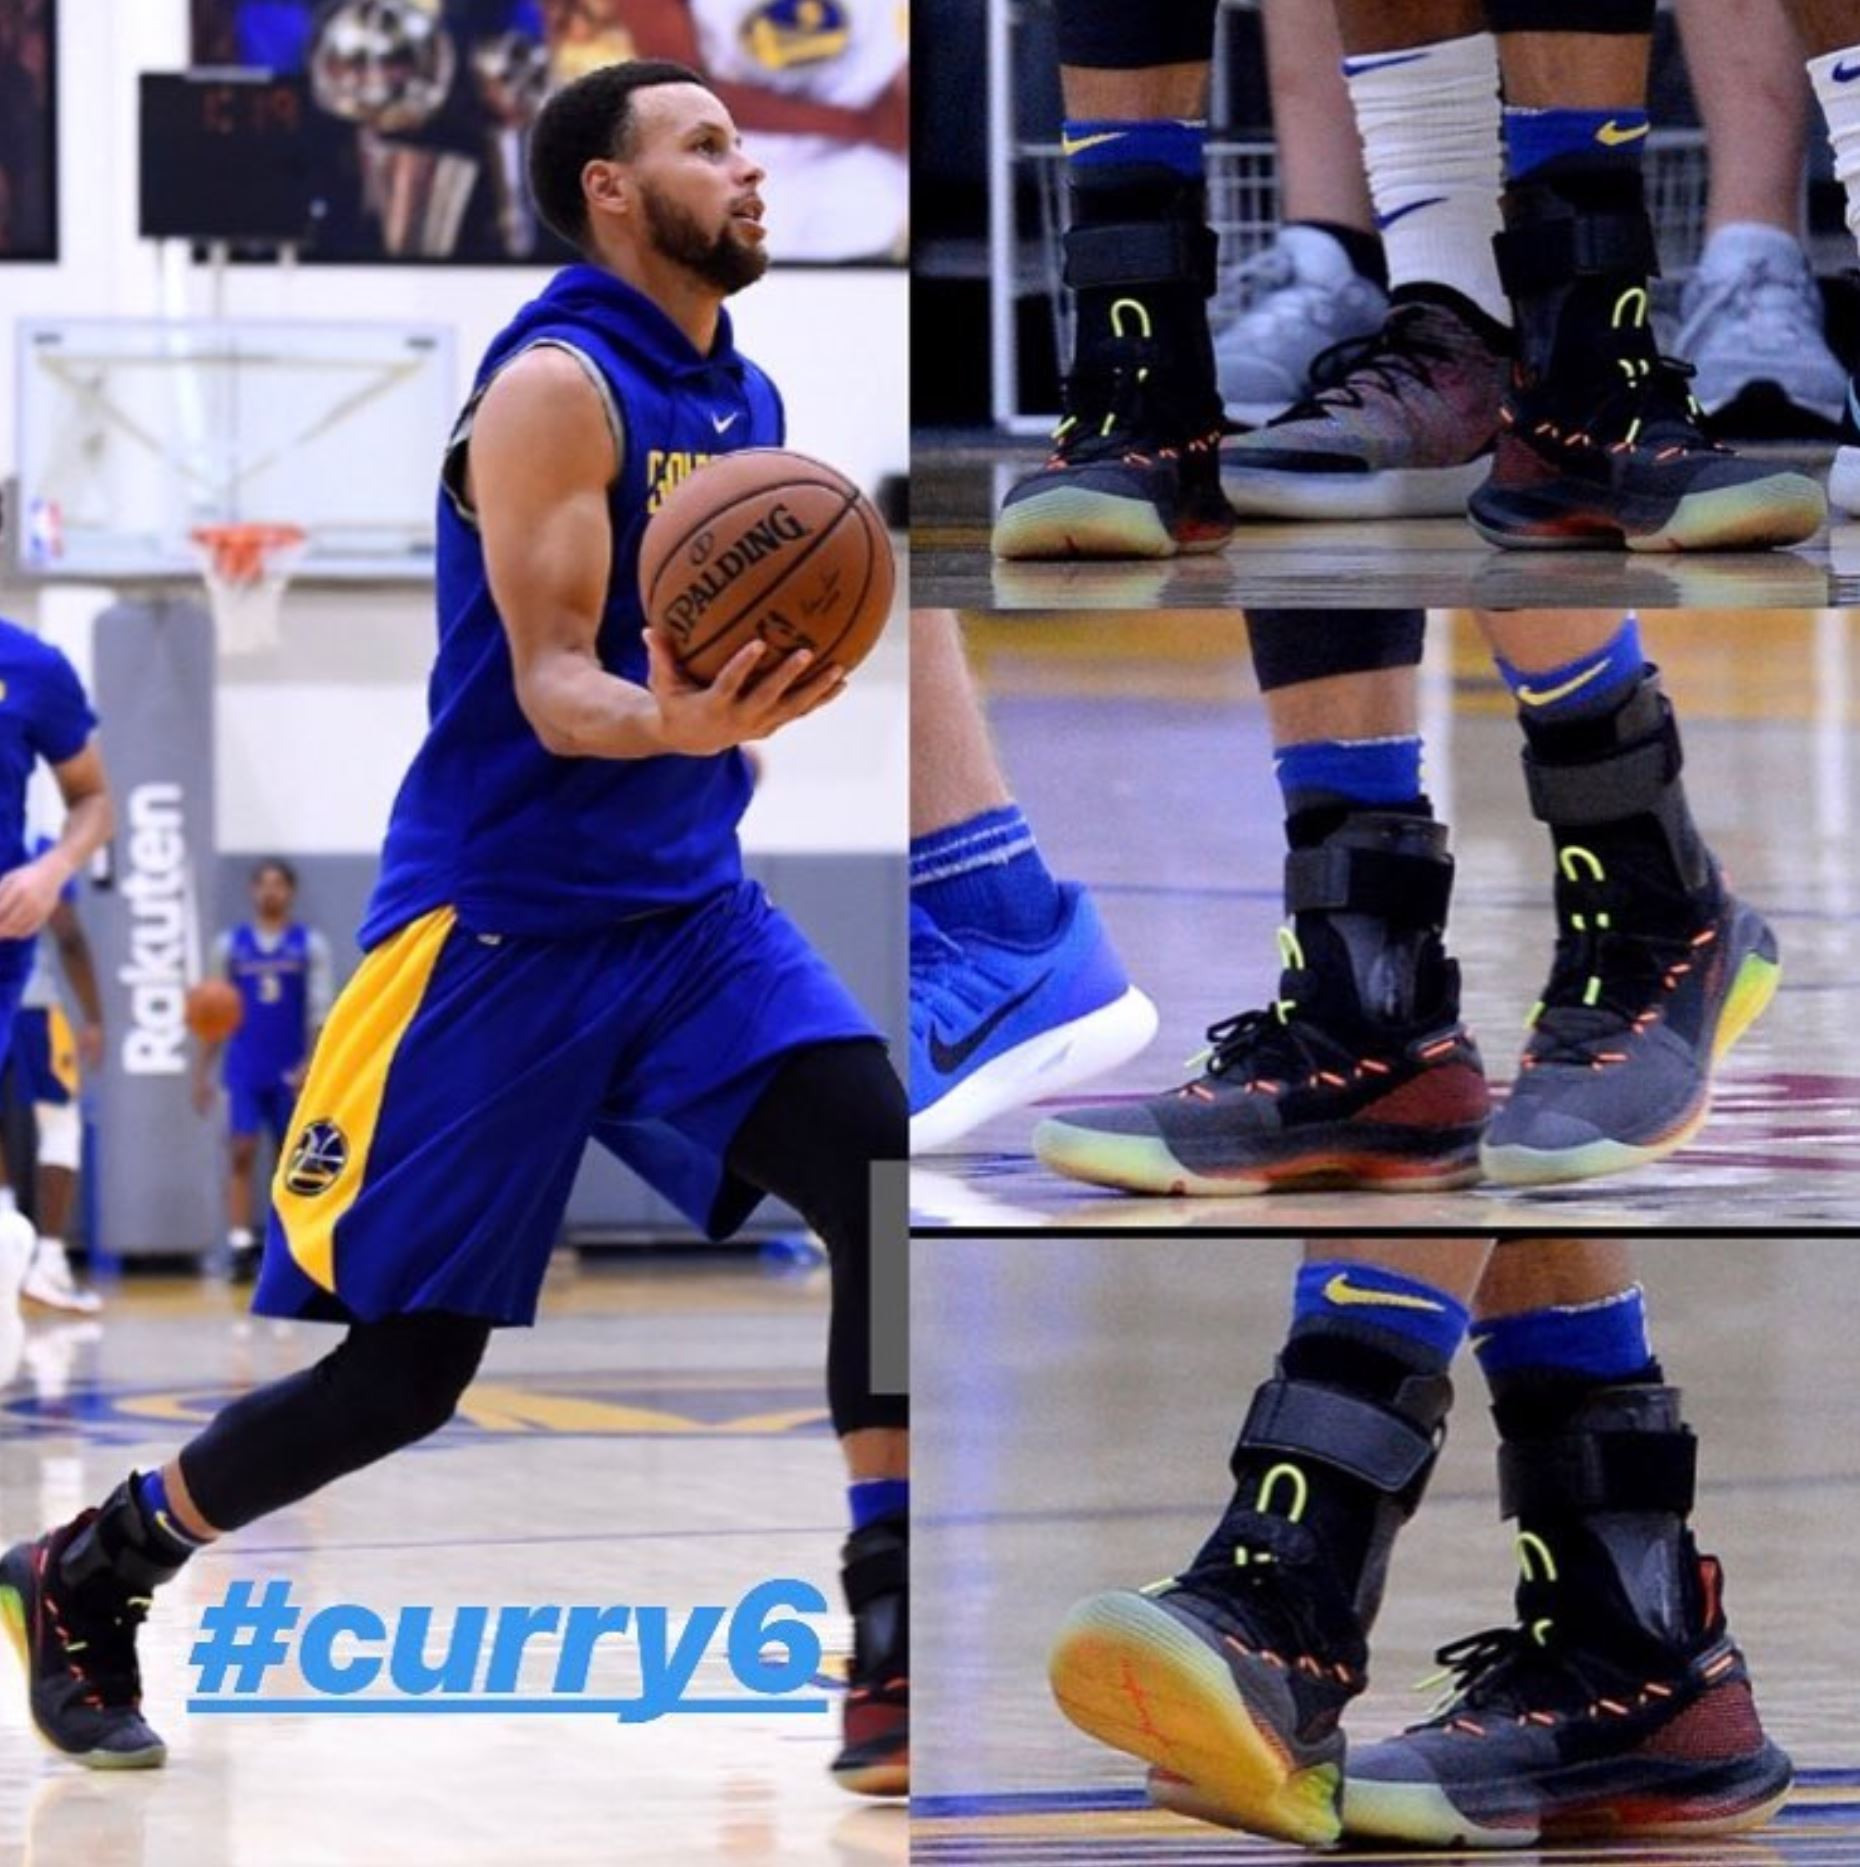 wholesale dealer 194f0 1a994 Has the Under Armour Curry 6 Leaked? - WearTesters